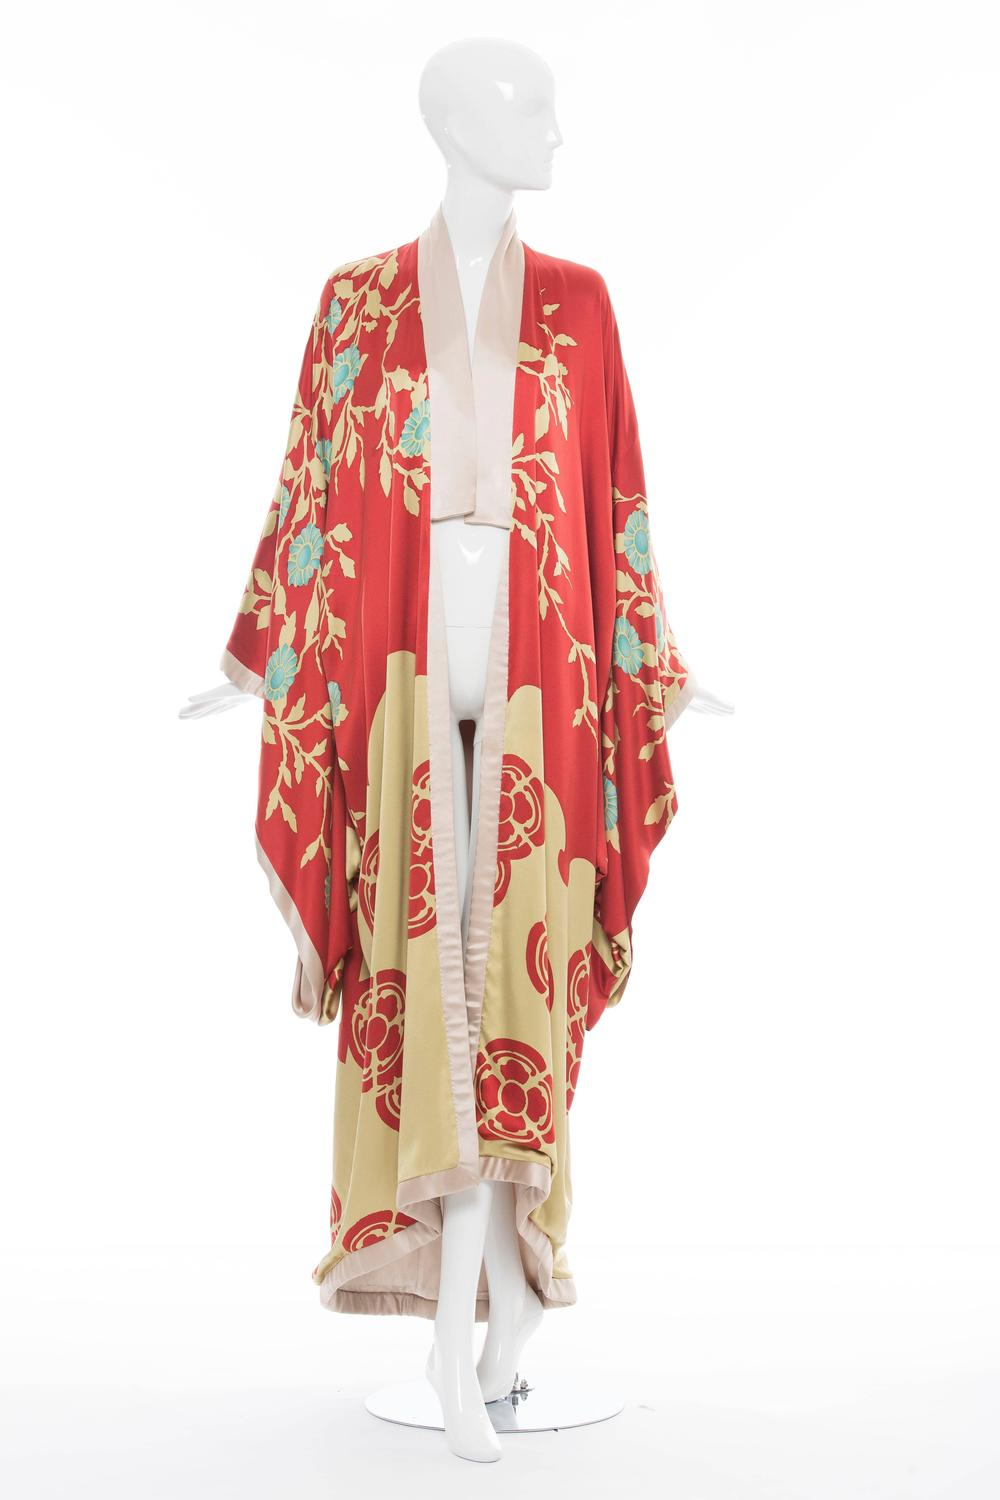 Popular kimono robe men of Good Quality and at Affordable Prices You can Buy on AliExpress. We believe in helping you find the product that is right for you.